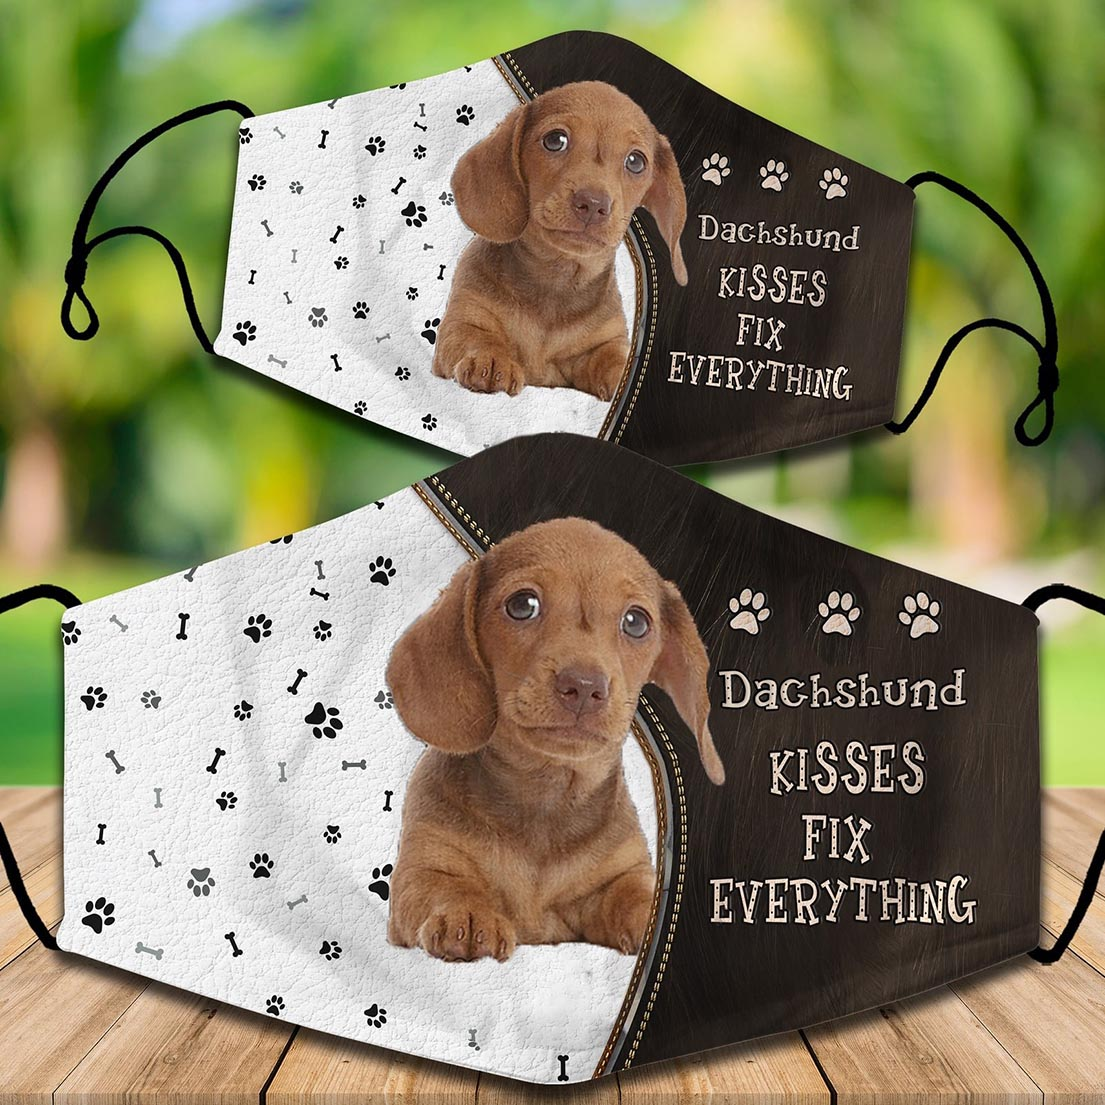 Dachshund kisses fix everything face mask - Picture 1